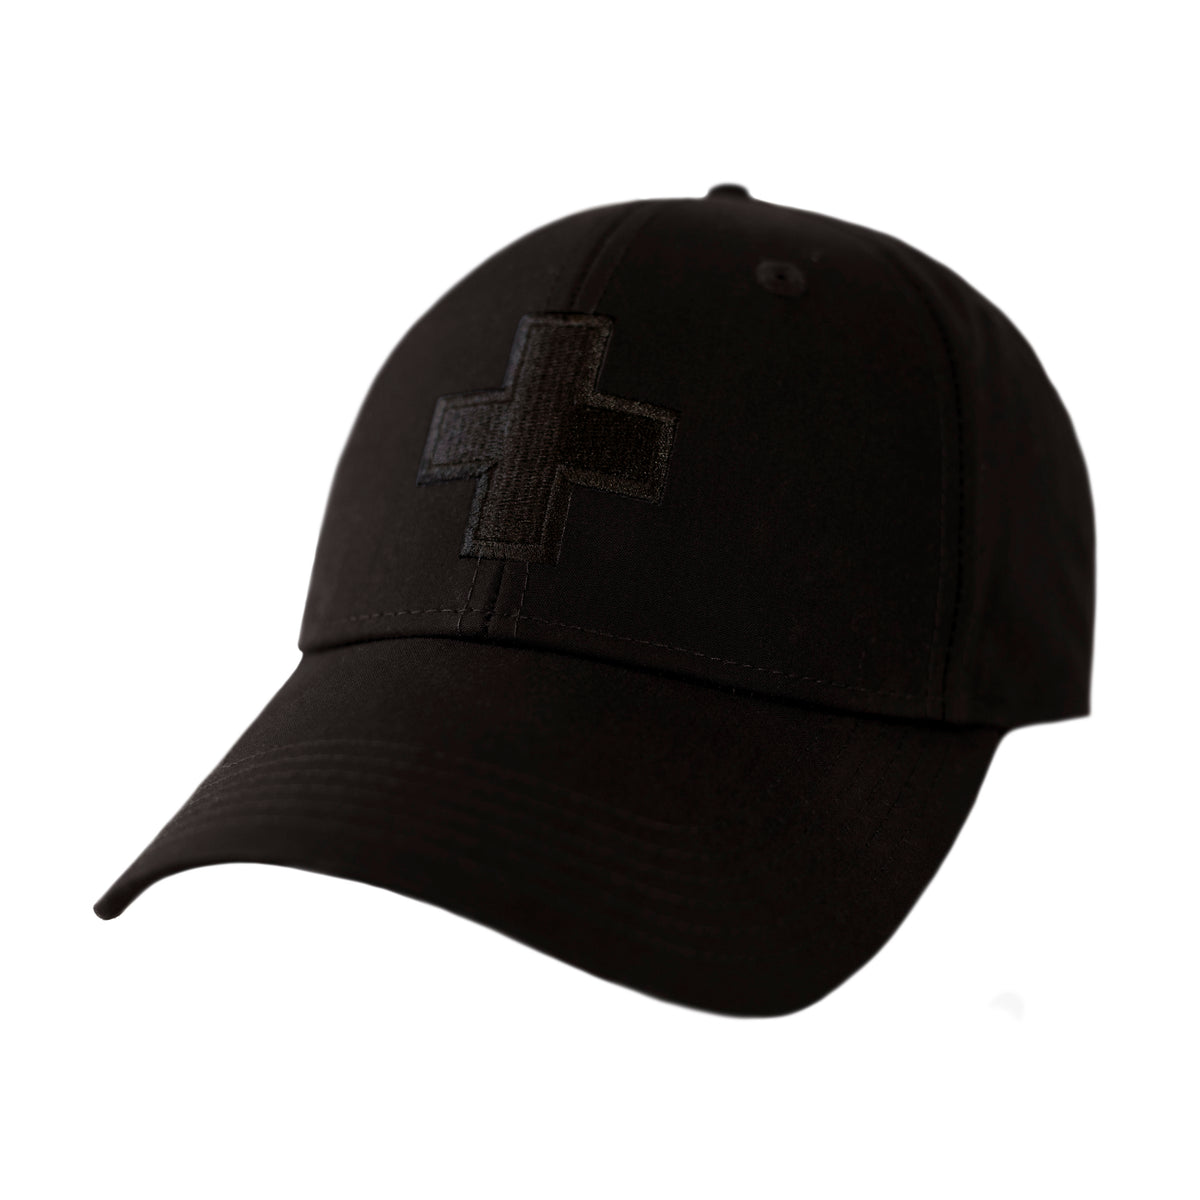 Men's Water Resistant Ventile Cotton Ball Cap By Fisher and Baker Black + Embroidered Logo